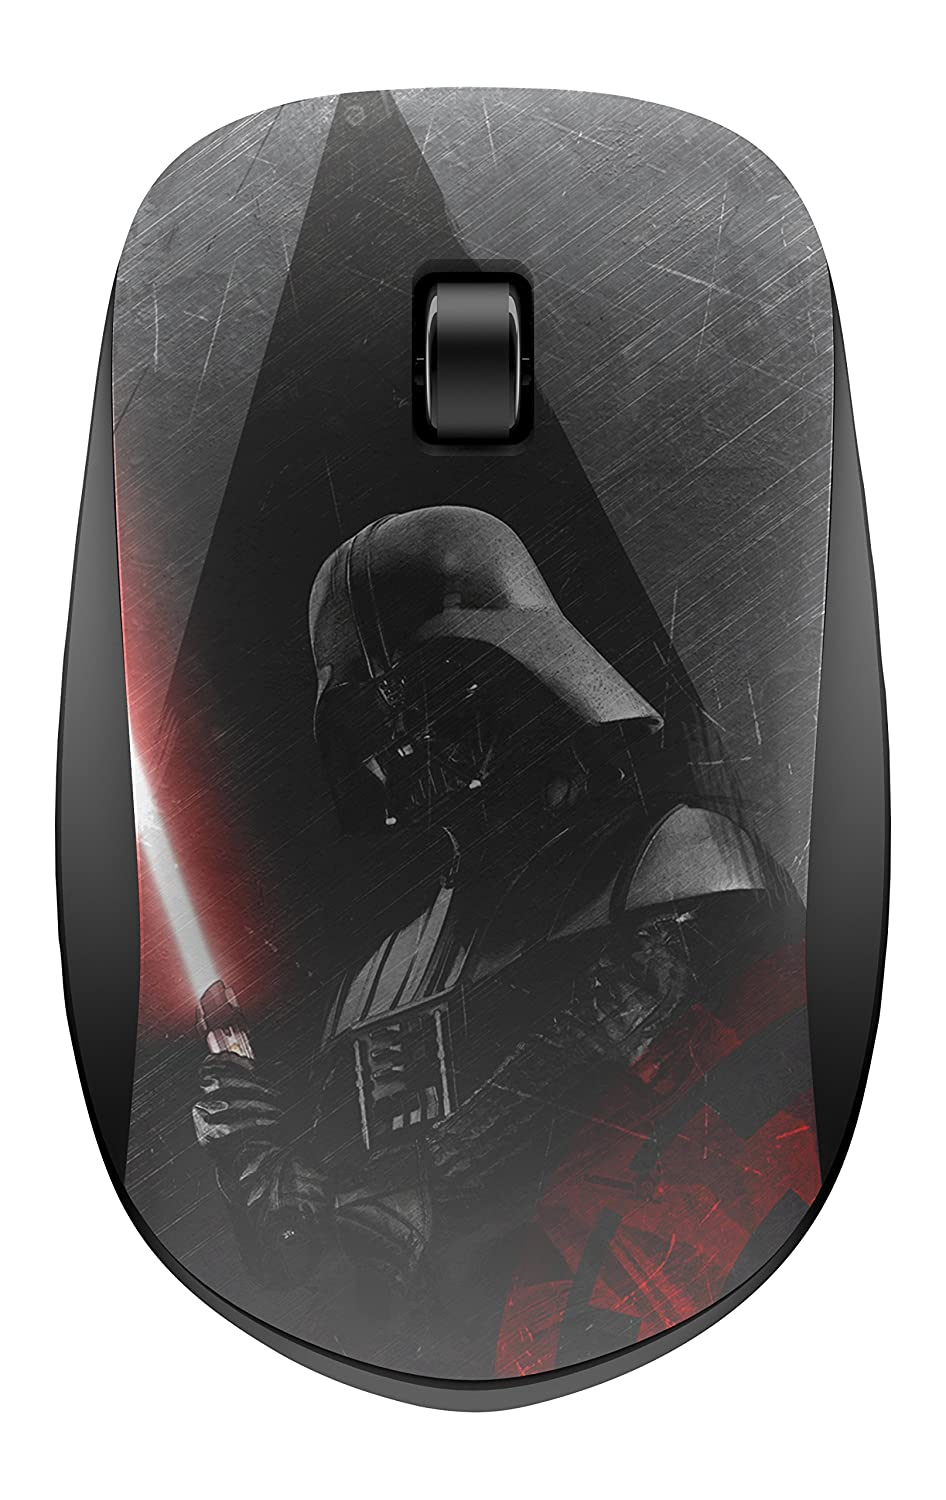 Hewlett Packard Star Wars Special Edition Wireless Mouse (P3E54AA) P3E54AA#ABC